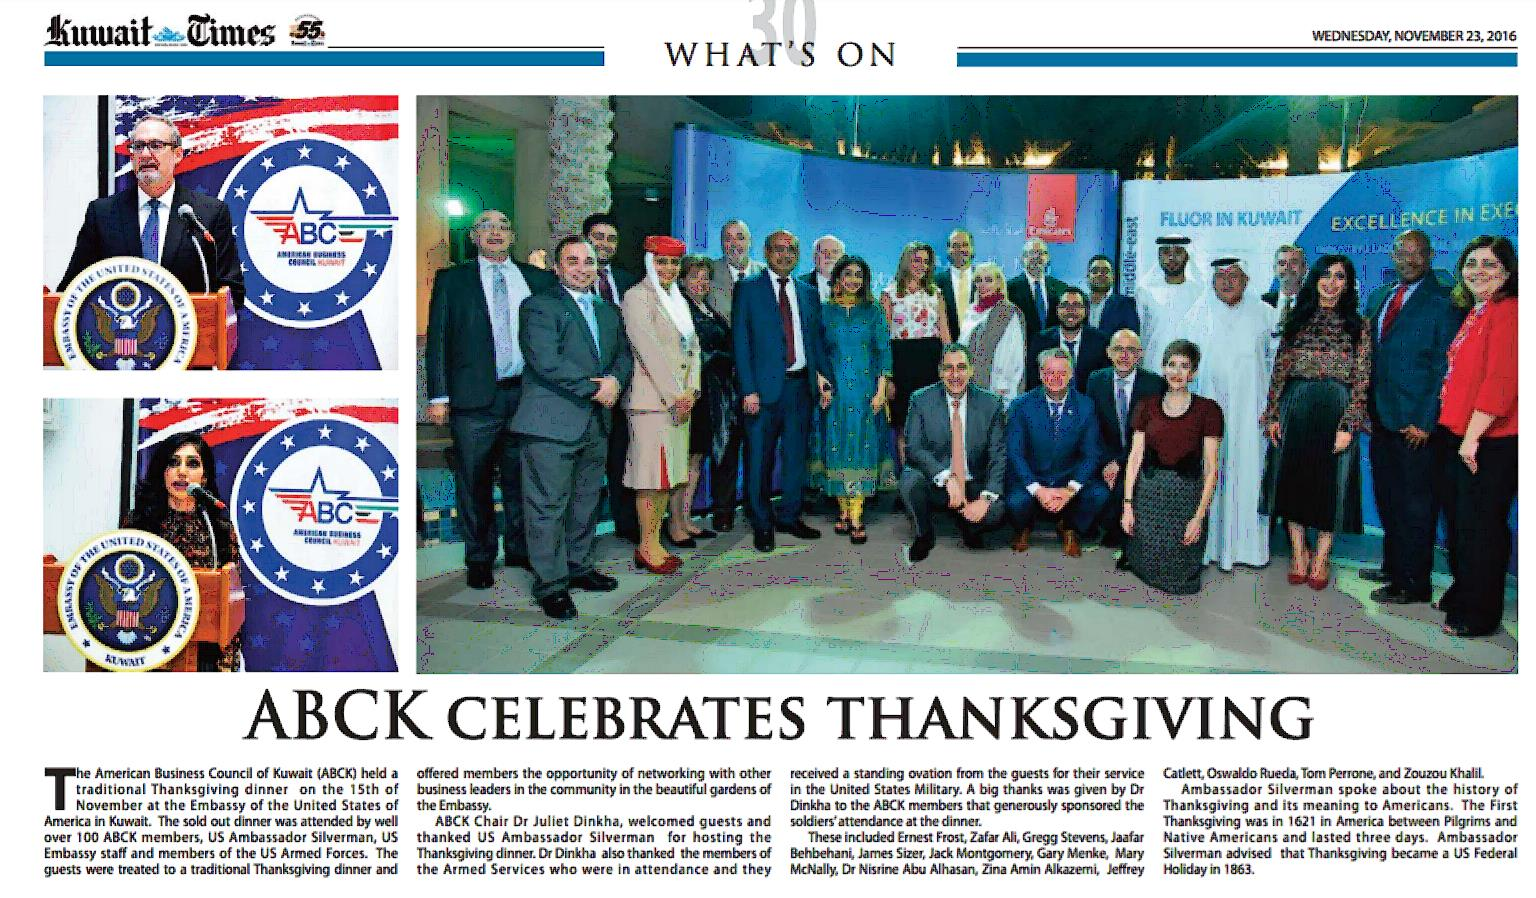 Kuwait Times Press Release Thanksgiving 2016 - American Business